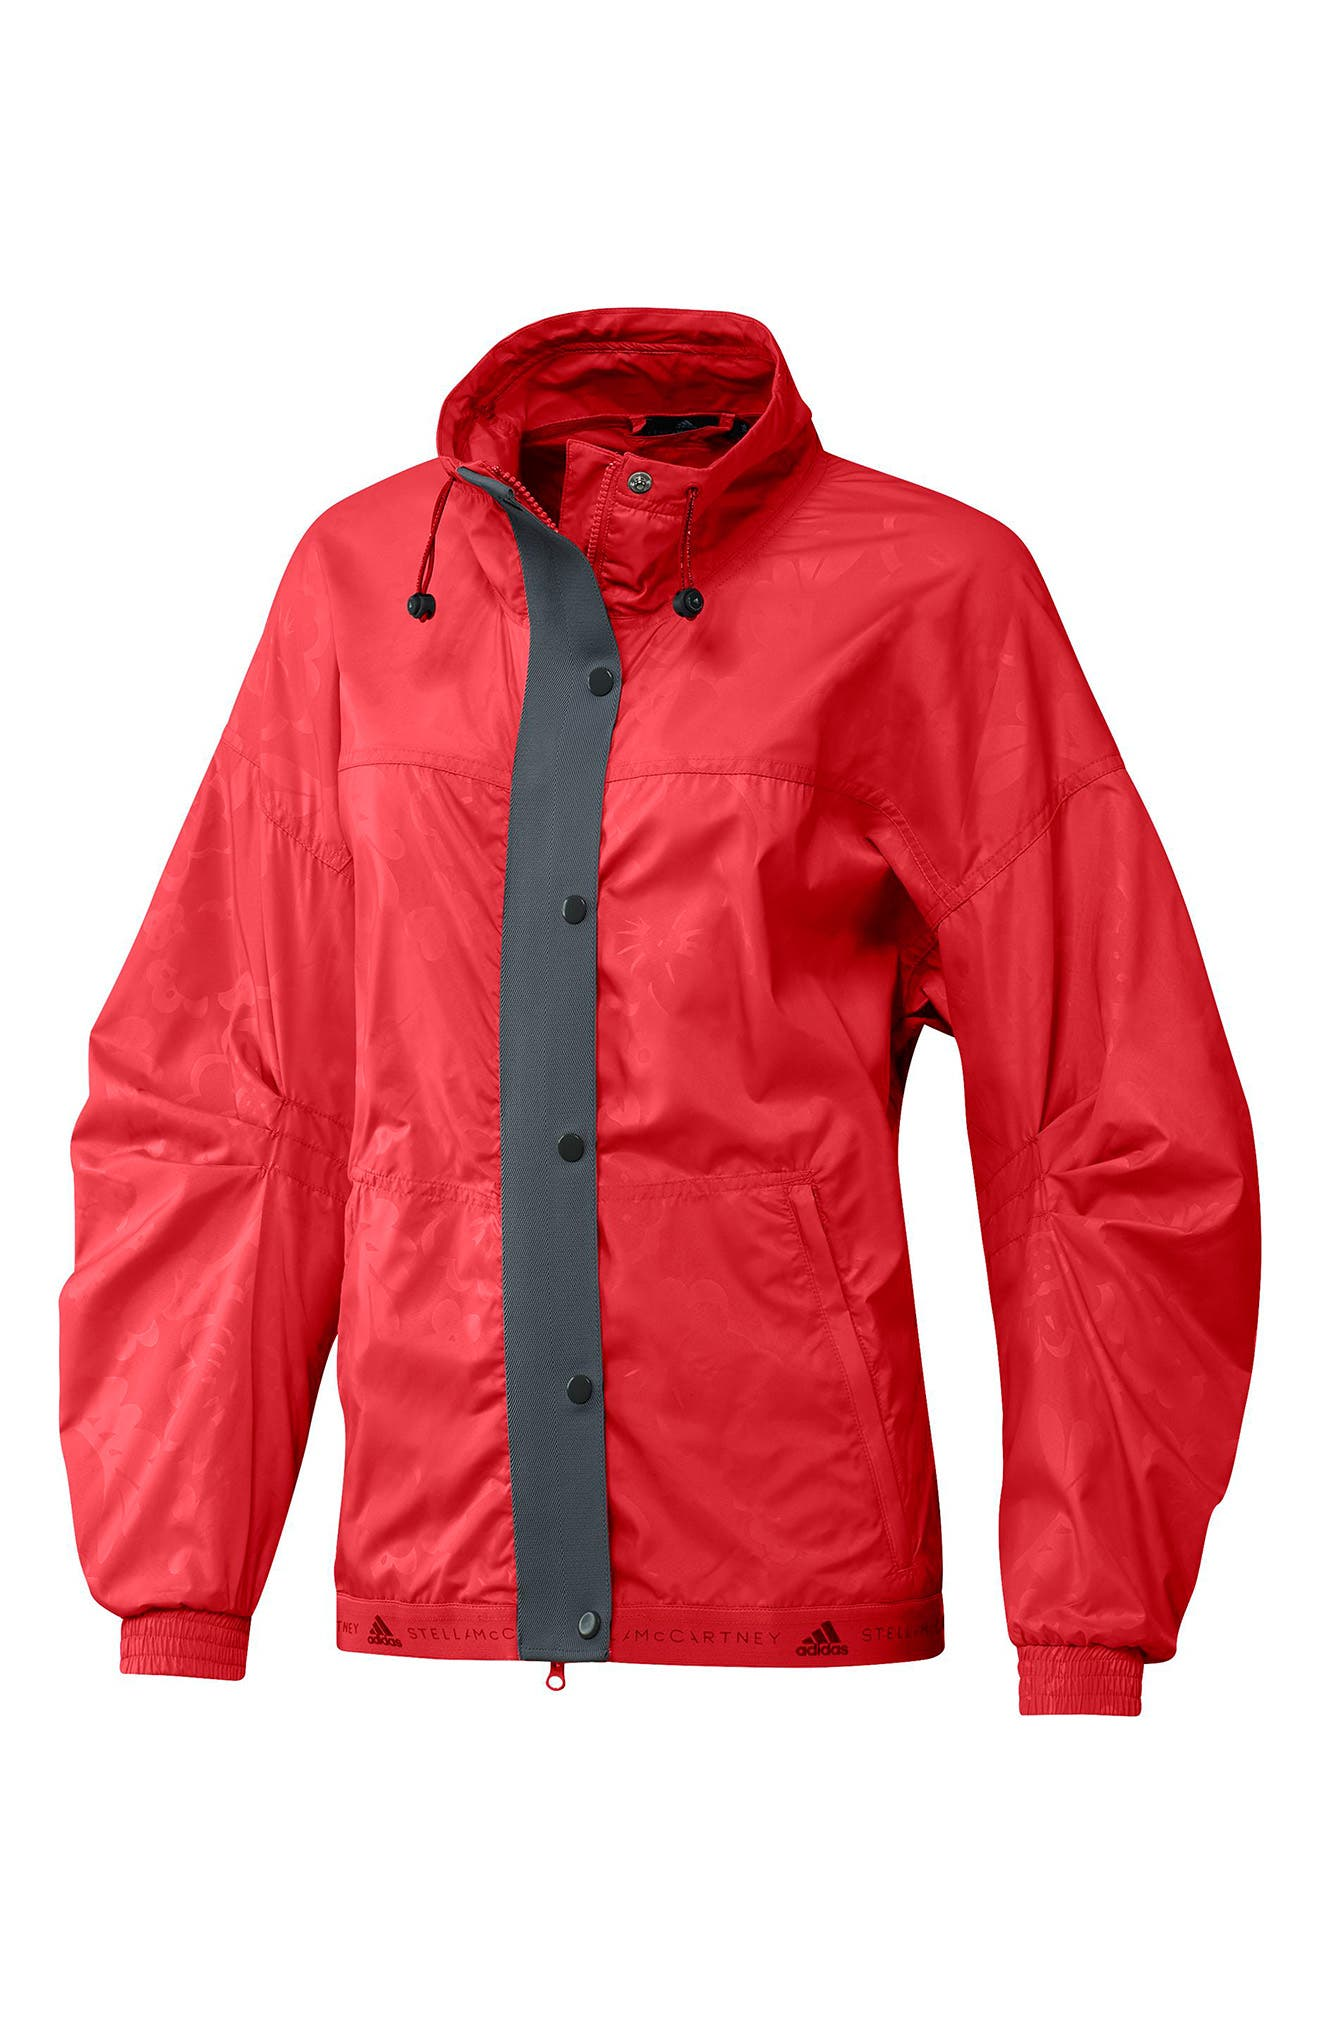 Run Wind Jacket,                             Alternate thumbnail 7, color,                             CORRED